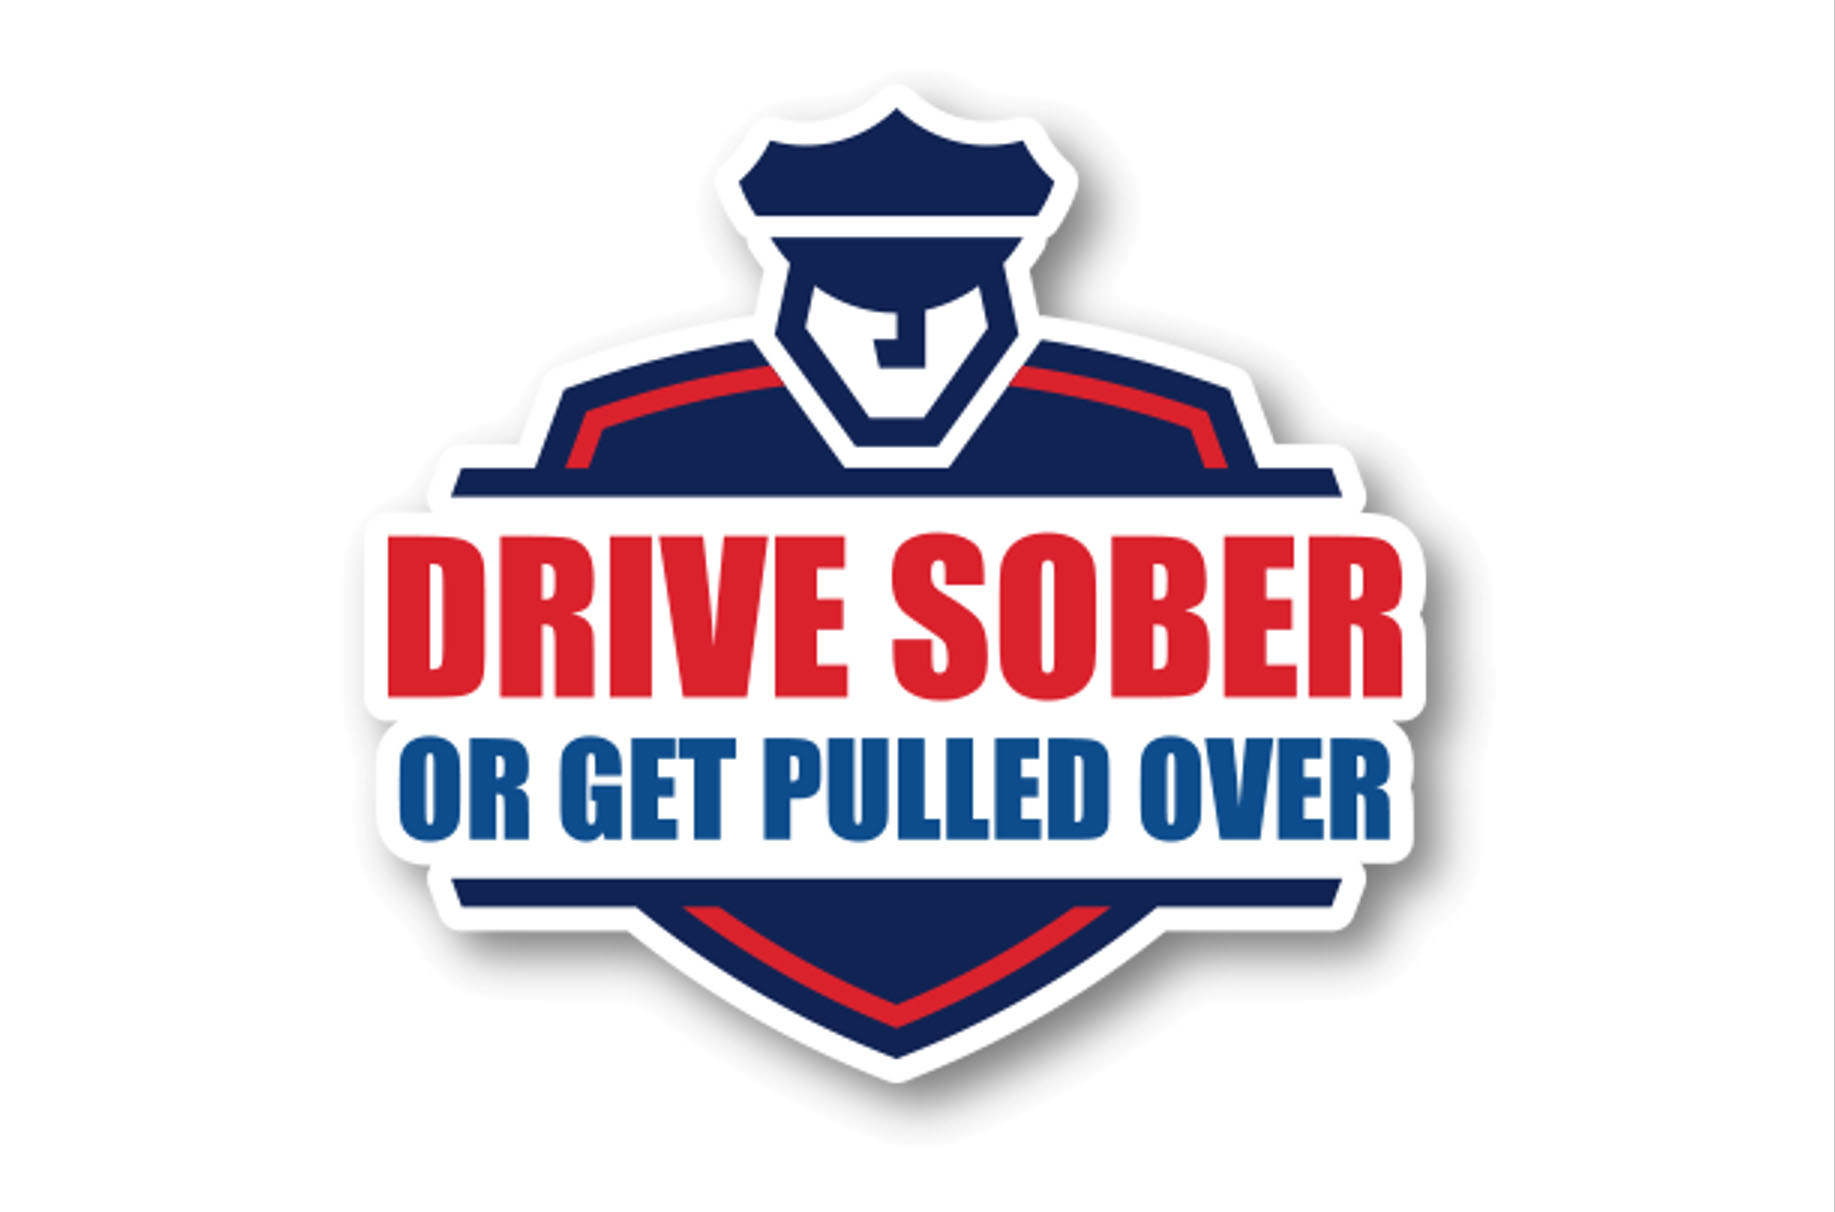 DriveSoberGetPulledOver.png